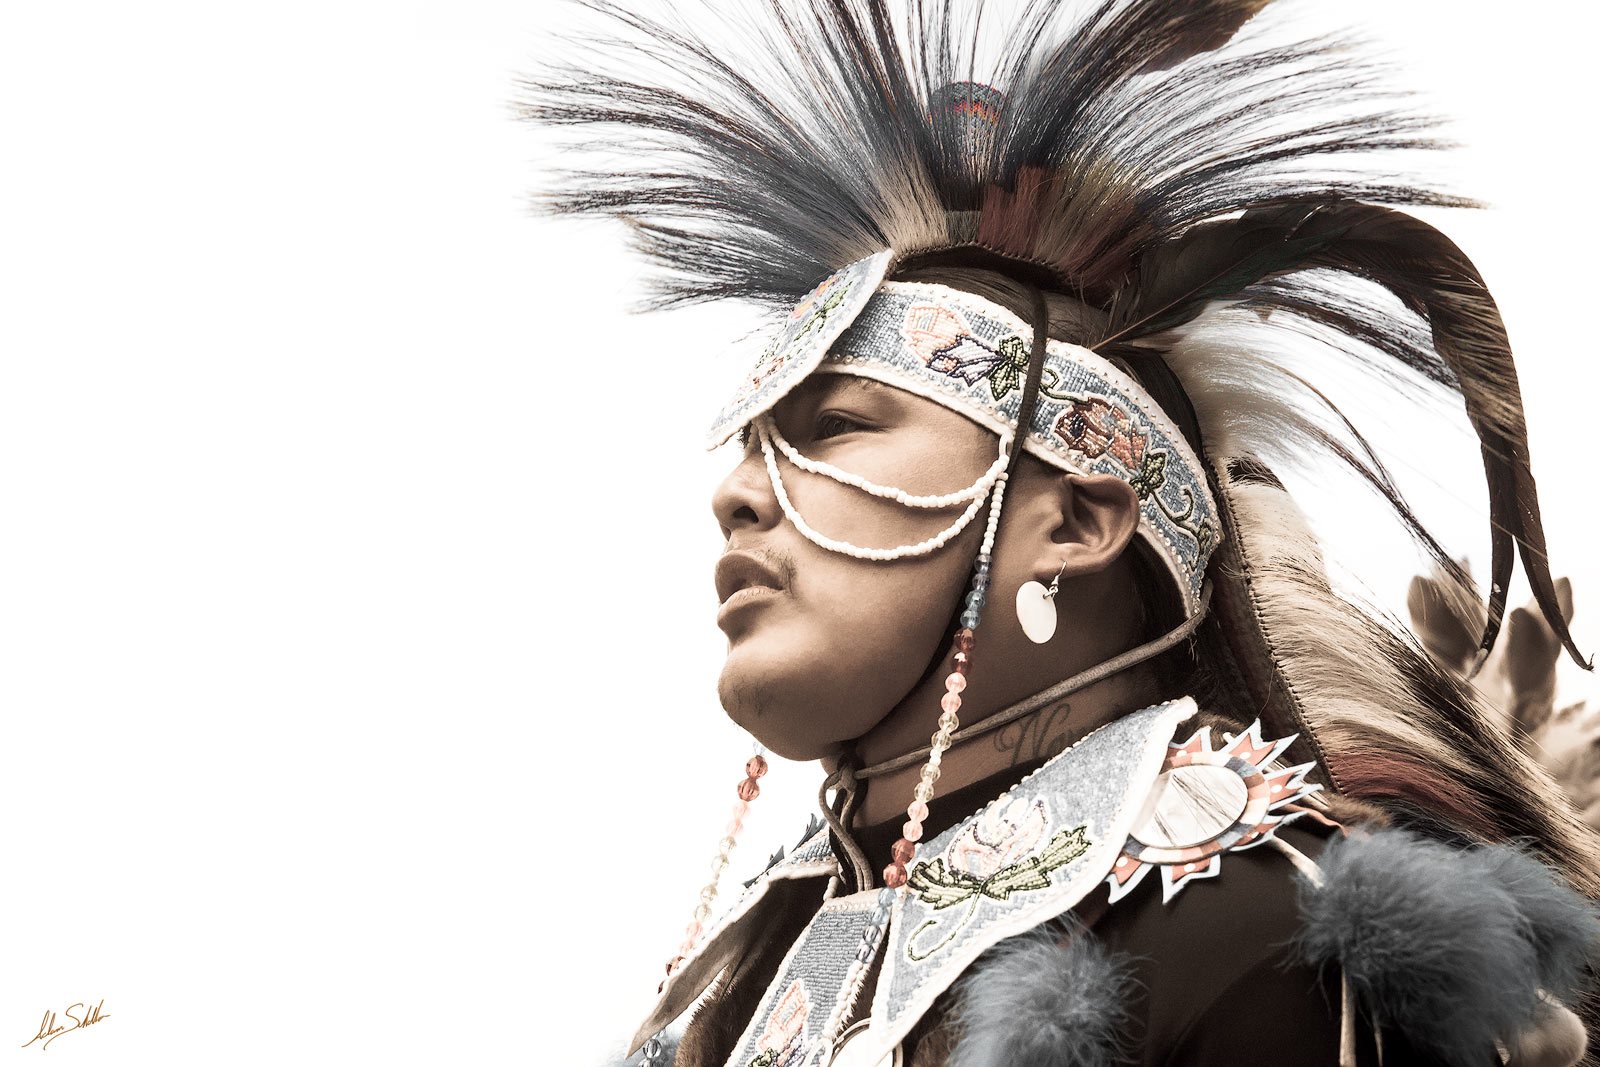 2010, Indian, NM, Native American, New Mexico, Taos Pueblo, Troy Becenti, USA, pow wow, photo